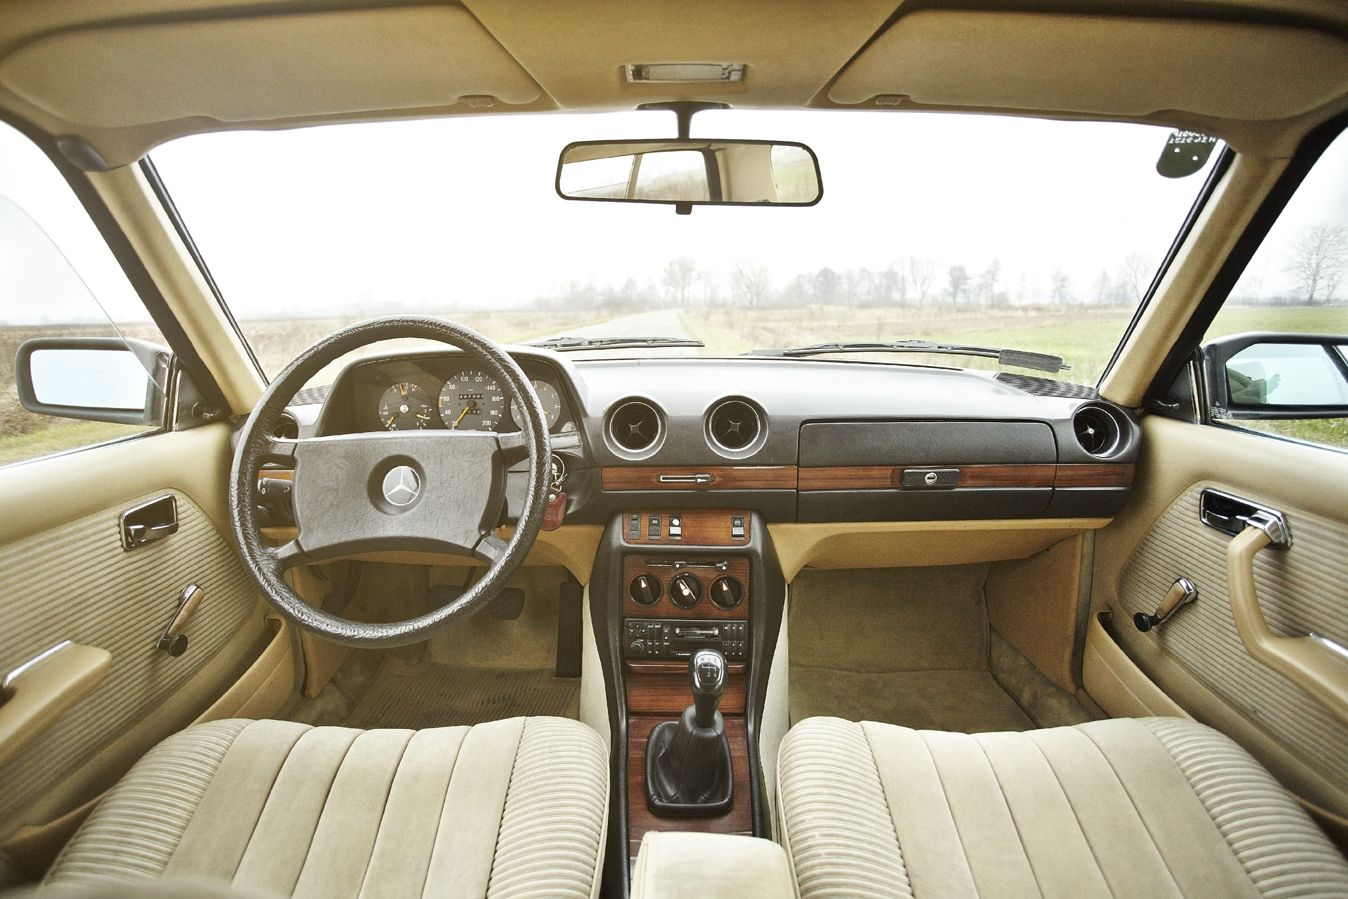 Mercedes Benz W123 Coupe Interior With Images Mercedes Benz